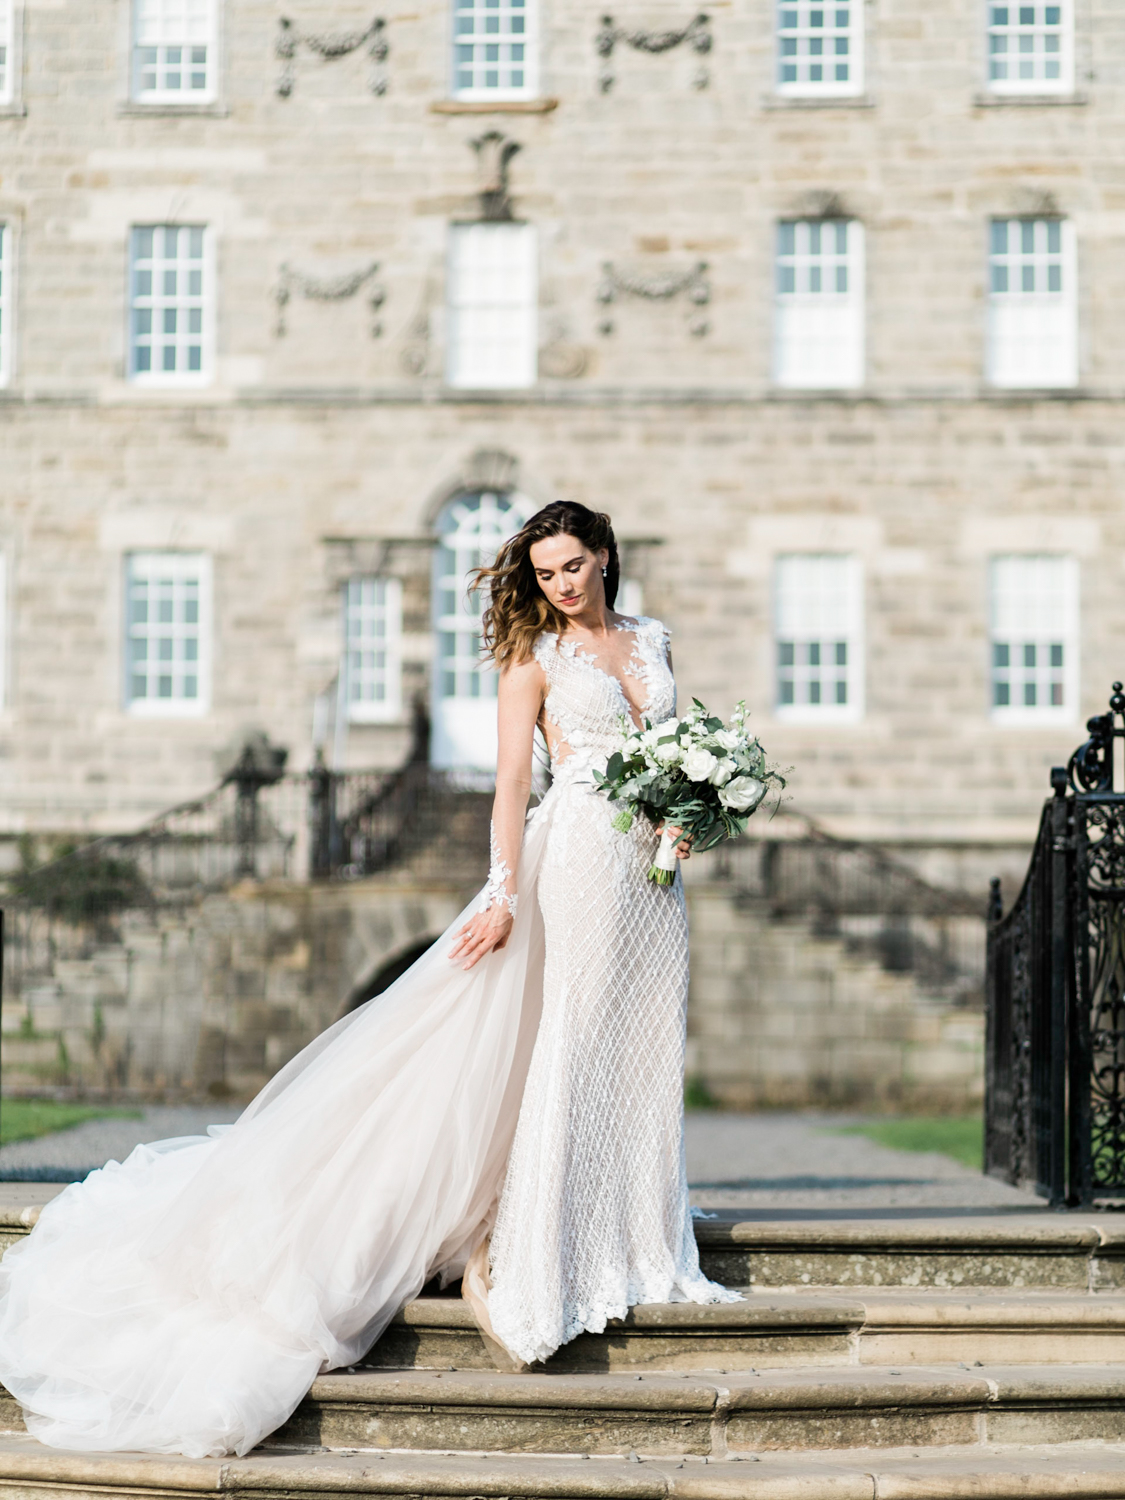 Luxury wedding with bride wearing Galia Lahav wedding dress